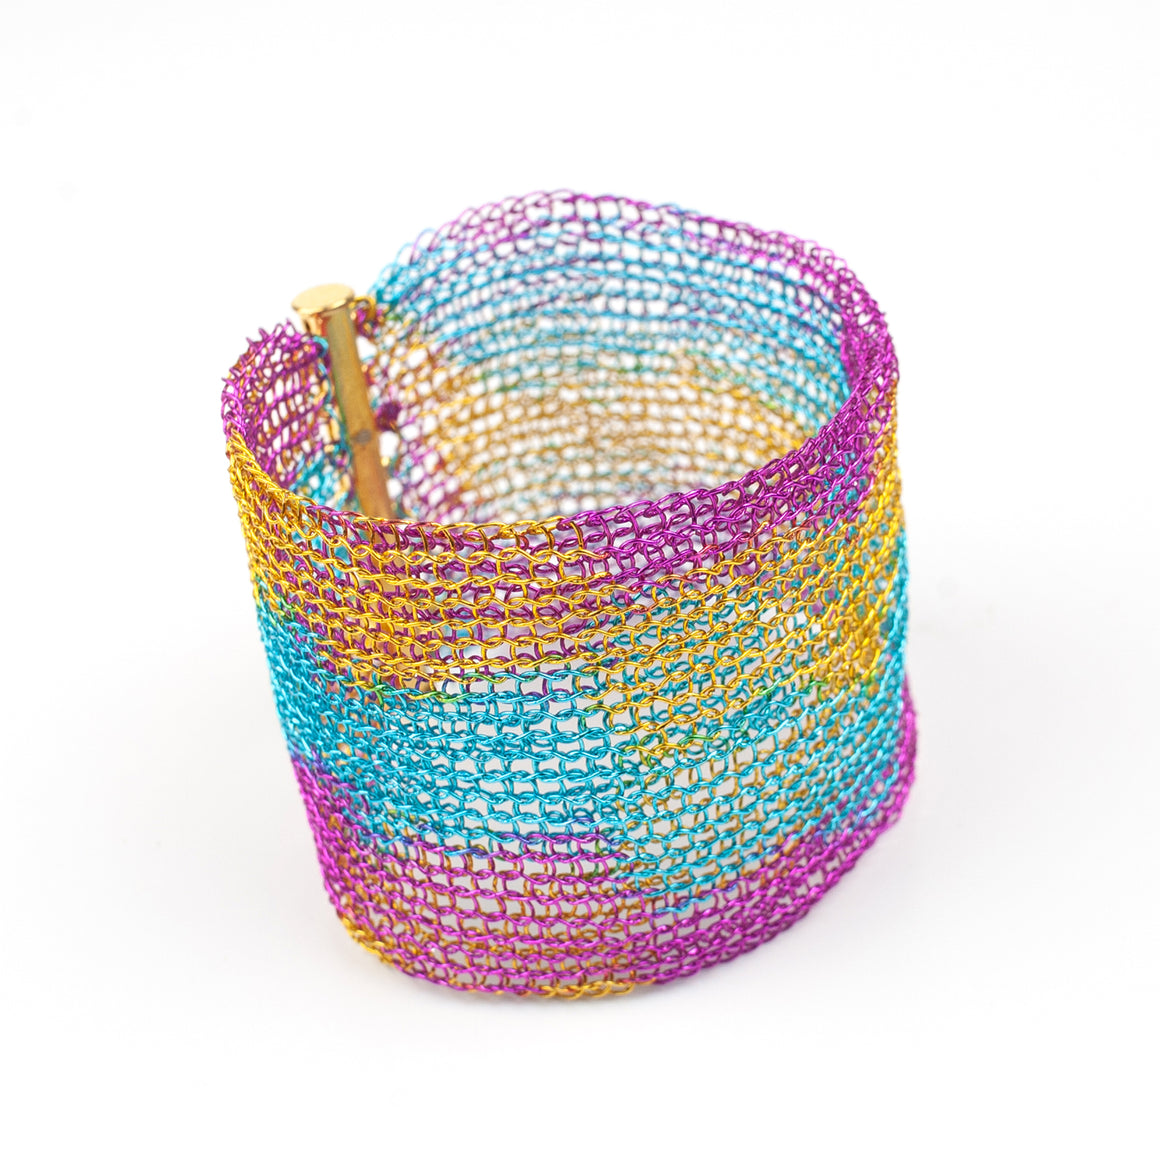 RAINBOW Cuff Bracelet , Wide knitted Cuff, Statement Bracelet - Yooladesign